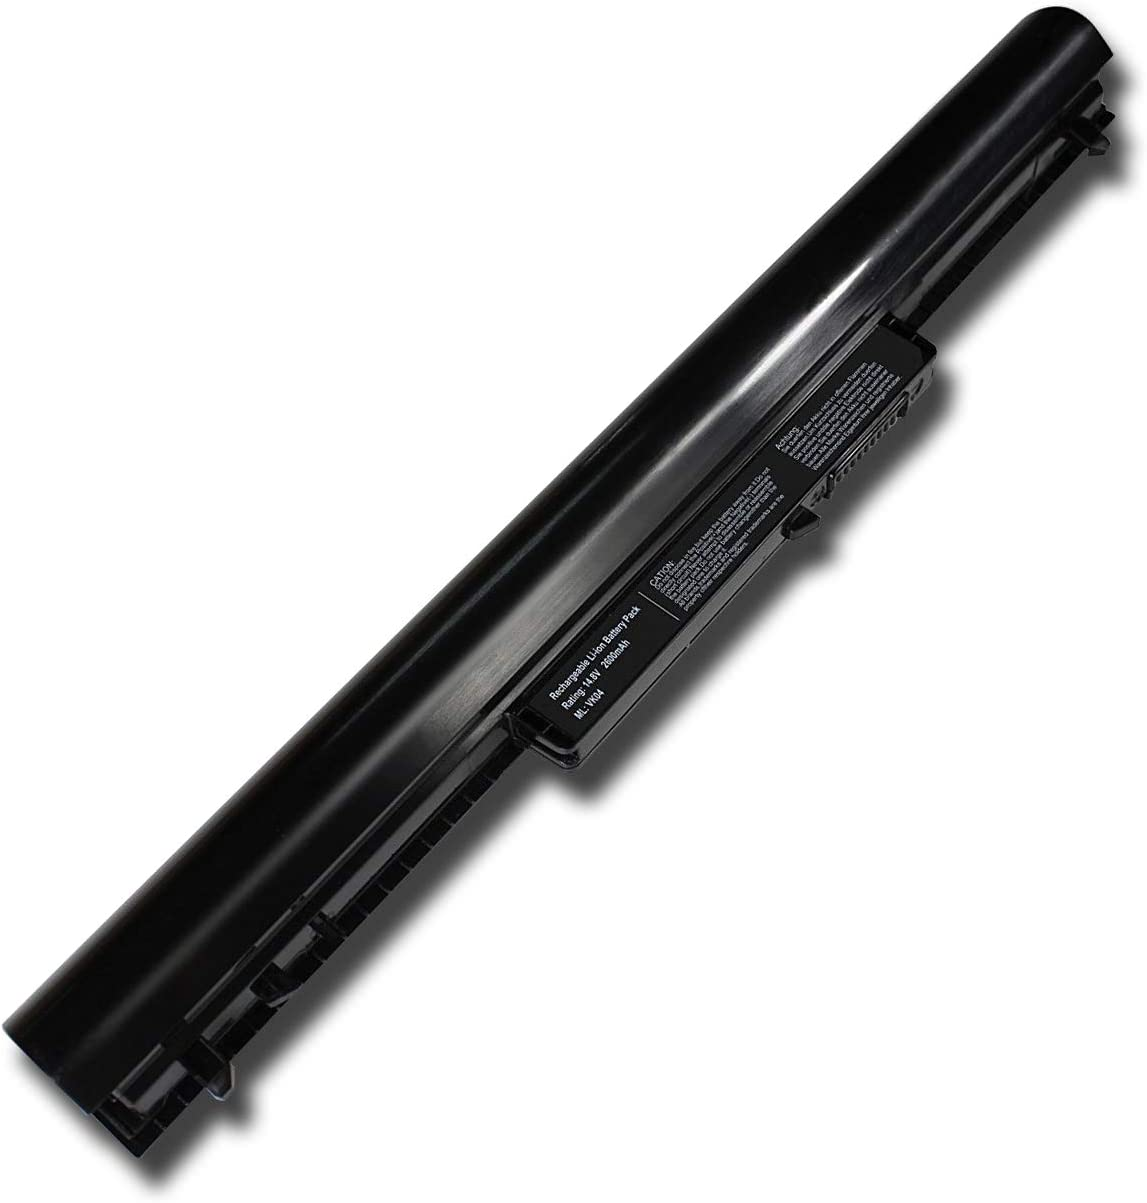 Performance VK04 Laptop Battery Replacement for HP Pavilion Sleekbook 14-b000 15-b000, Pavilion Ultrabook 14-b000 694864-851 695192-001, HP H4Q45AA HSTNN-DB4D HSTNN-YB4D 14.4V 2600mah